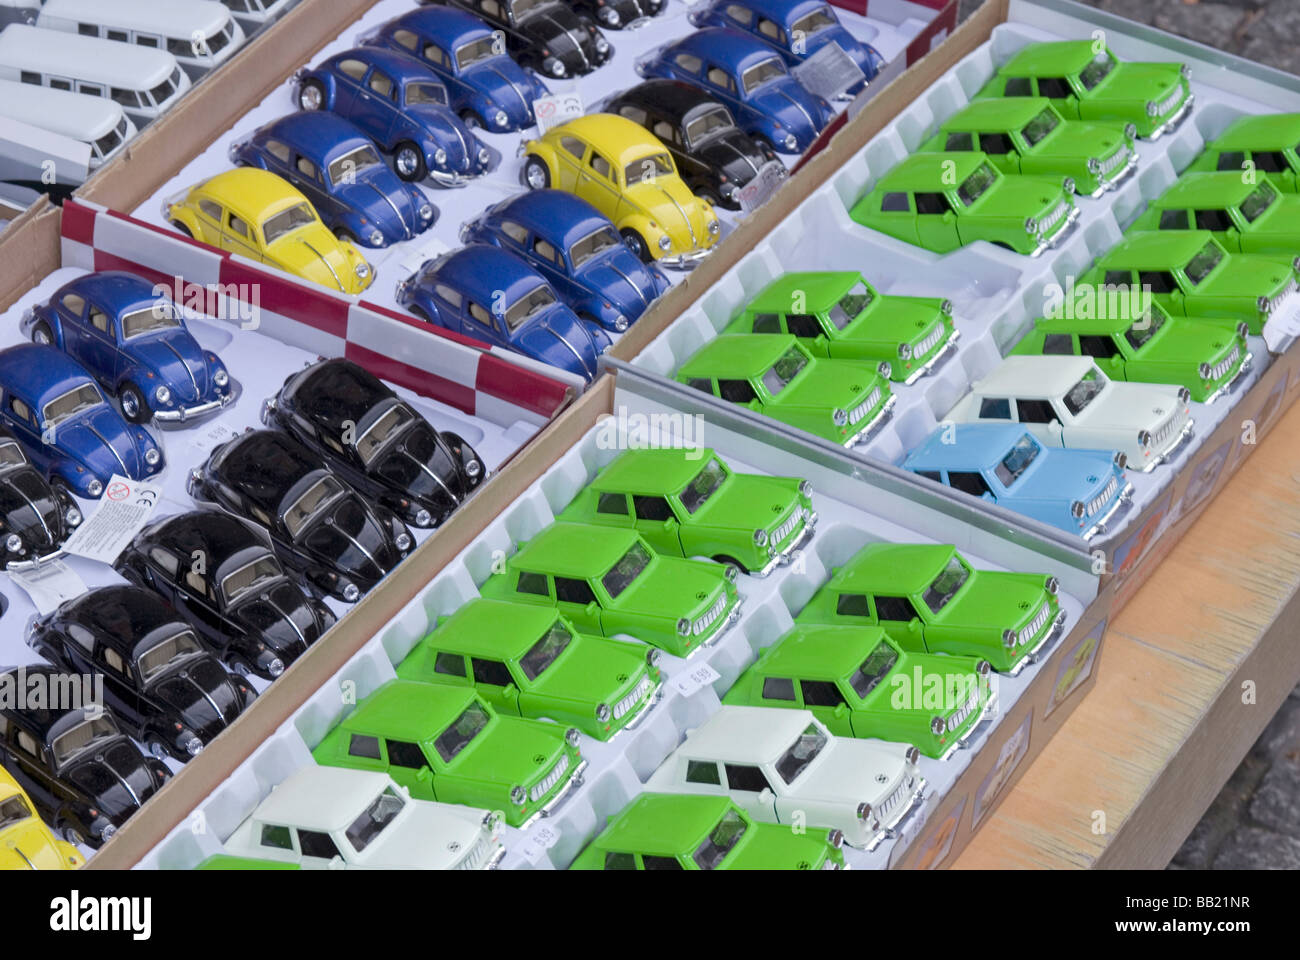 Toy Trabant and Volkswagen cars for sale on a tourist souvenir stall in Berlin Germany - Stock Image